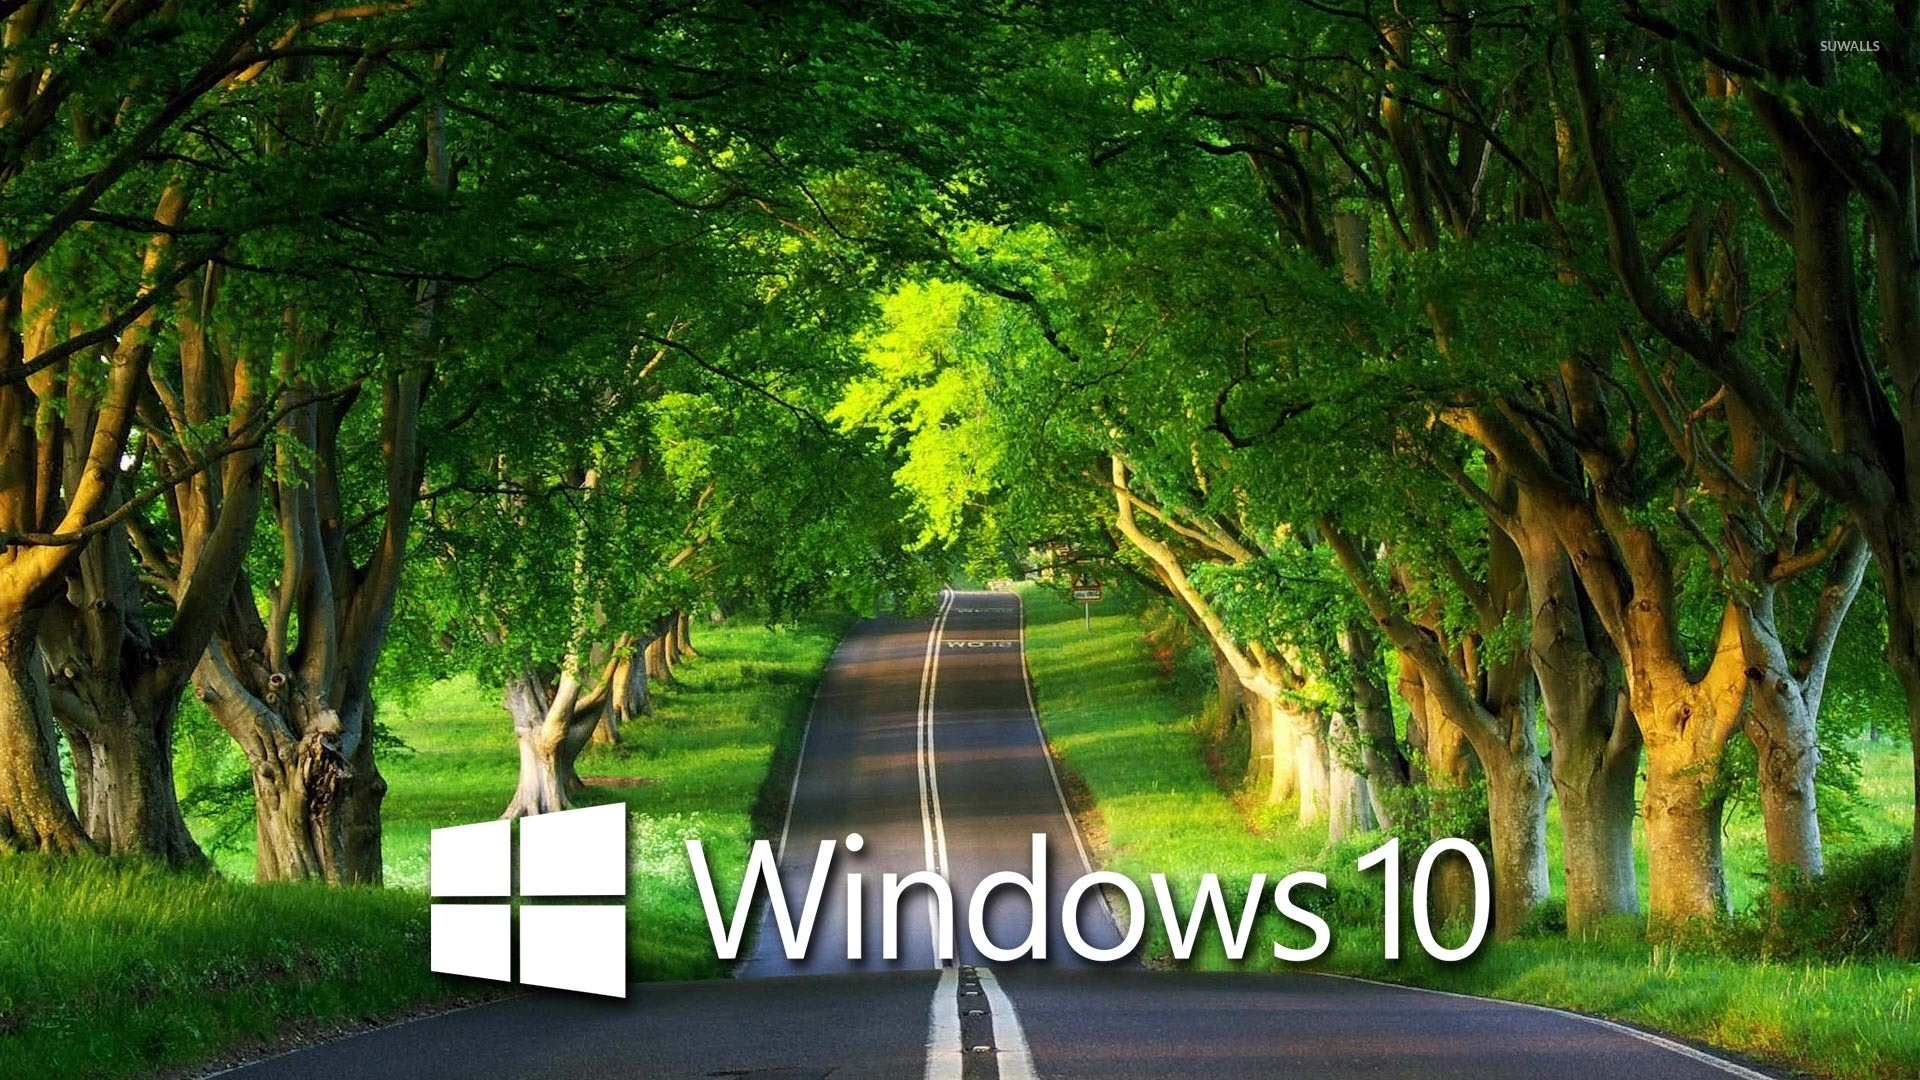 Superb Wallpapers With Quotes Windows 10 Over The Country Road 4 Wallpaper Computer